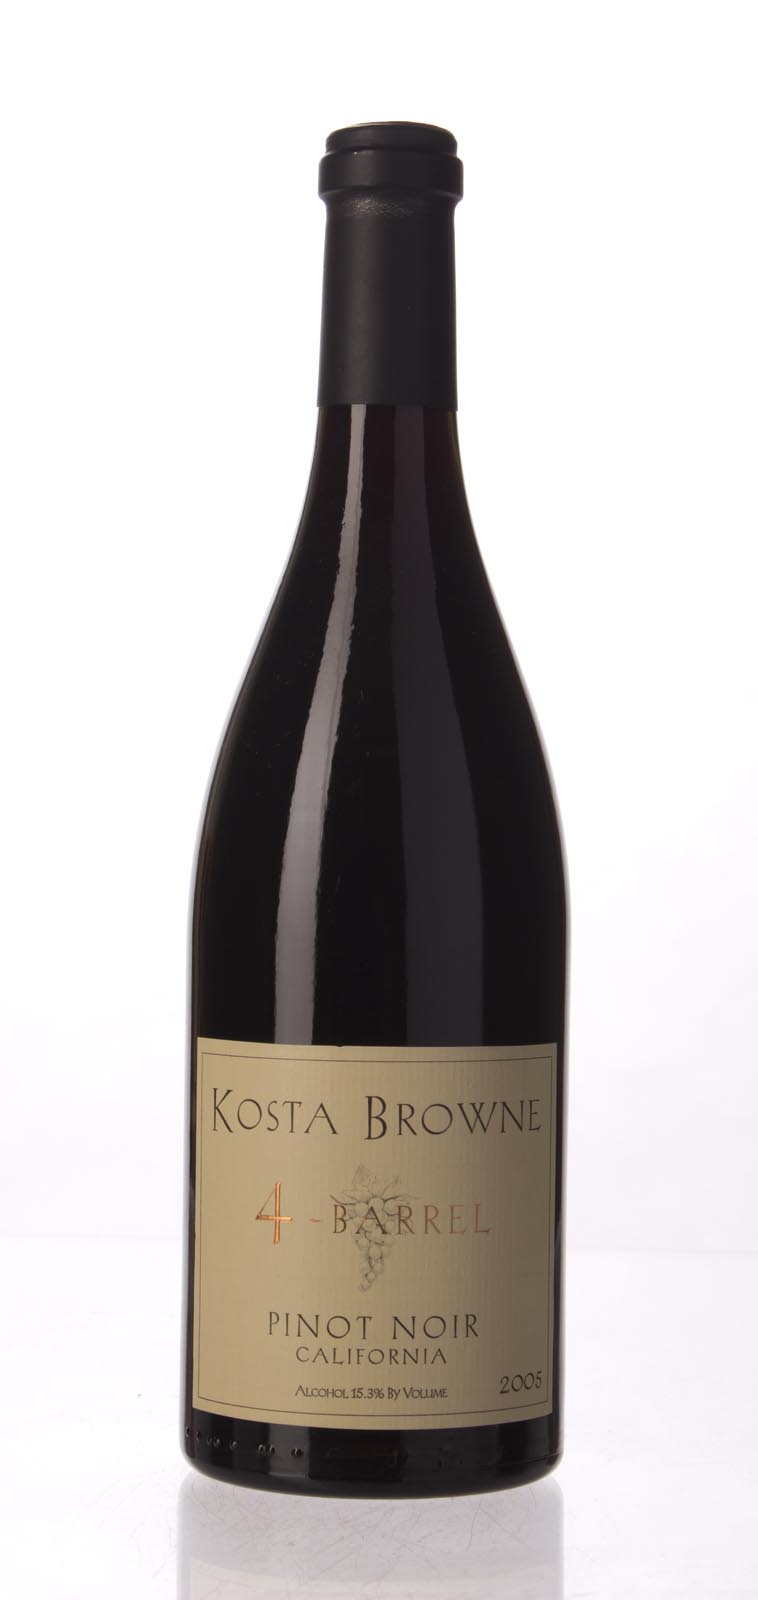 Kosta Browne Pinot Noir 4 Barrel 2005, 750mL (WS96) from The BPW - Merchants of rare and fine wines.